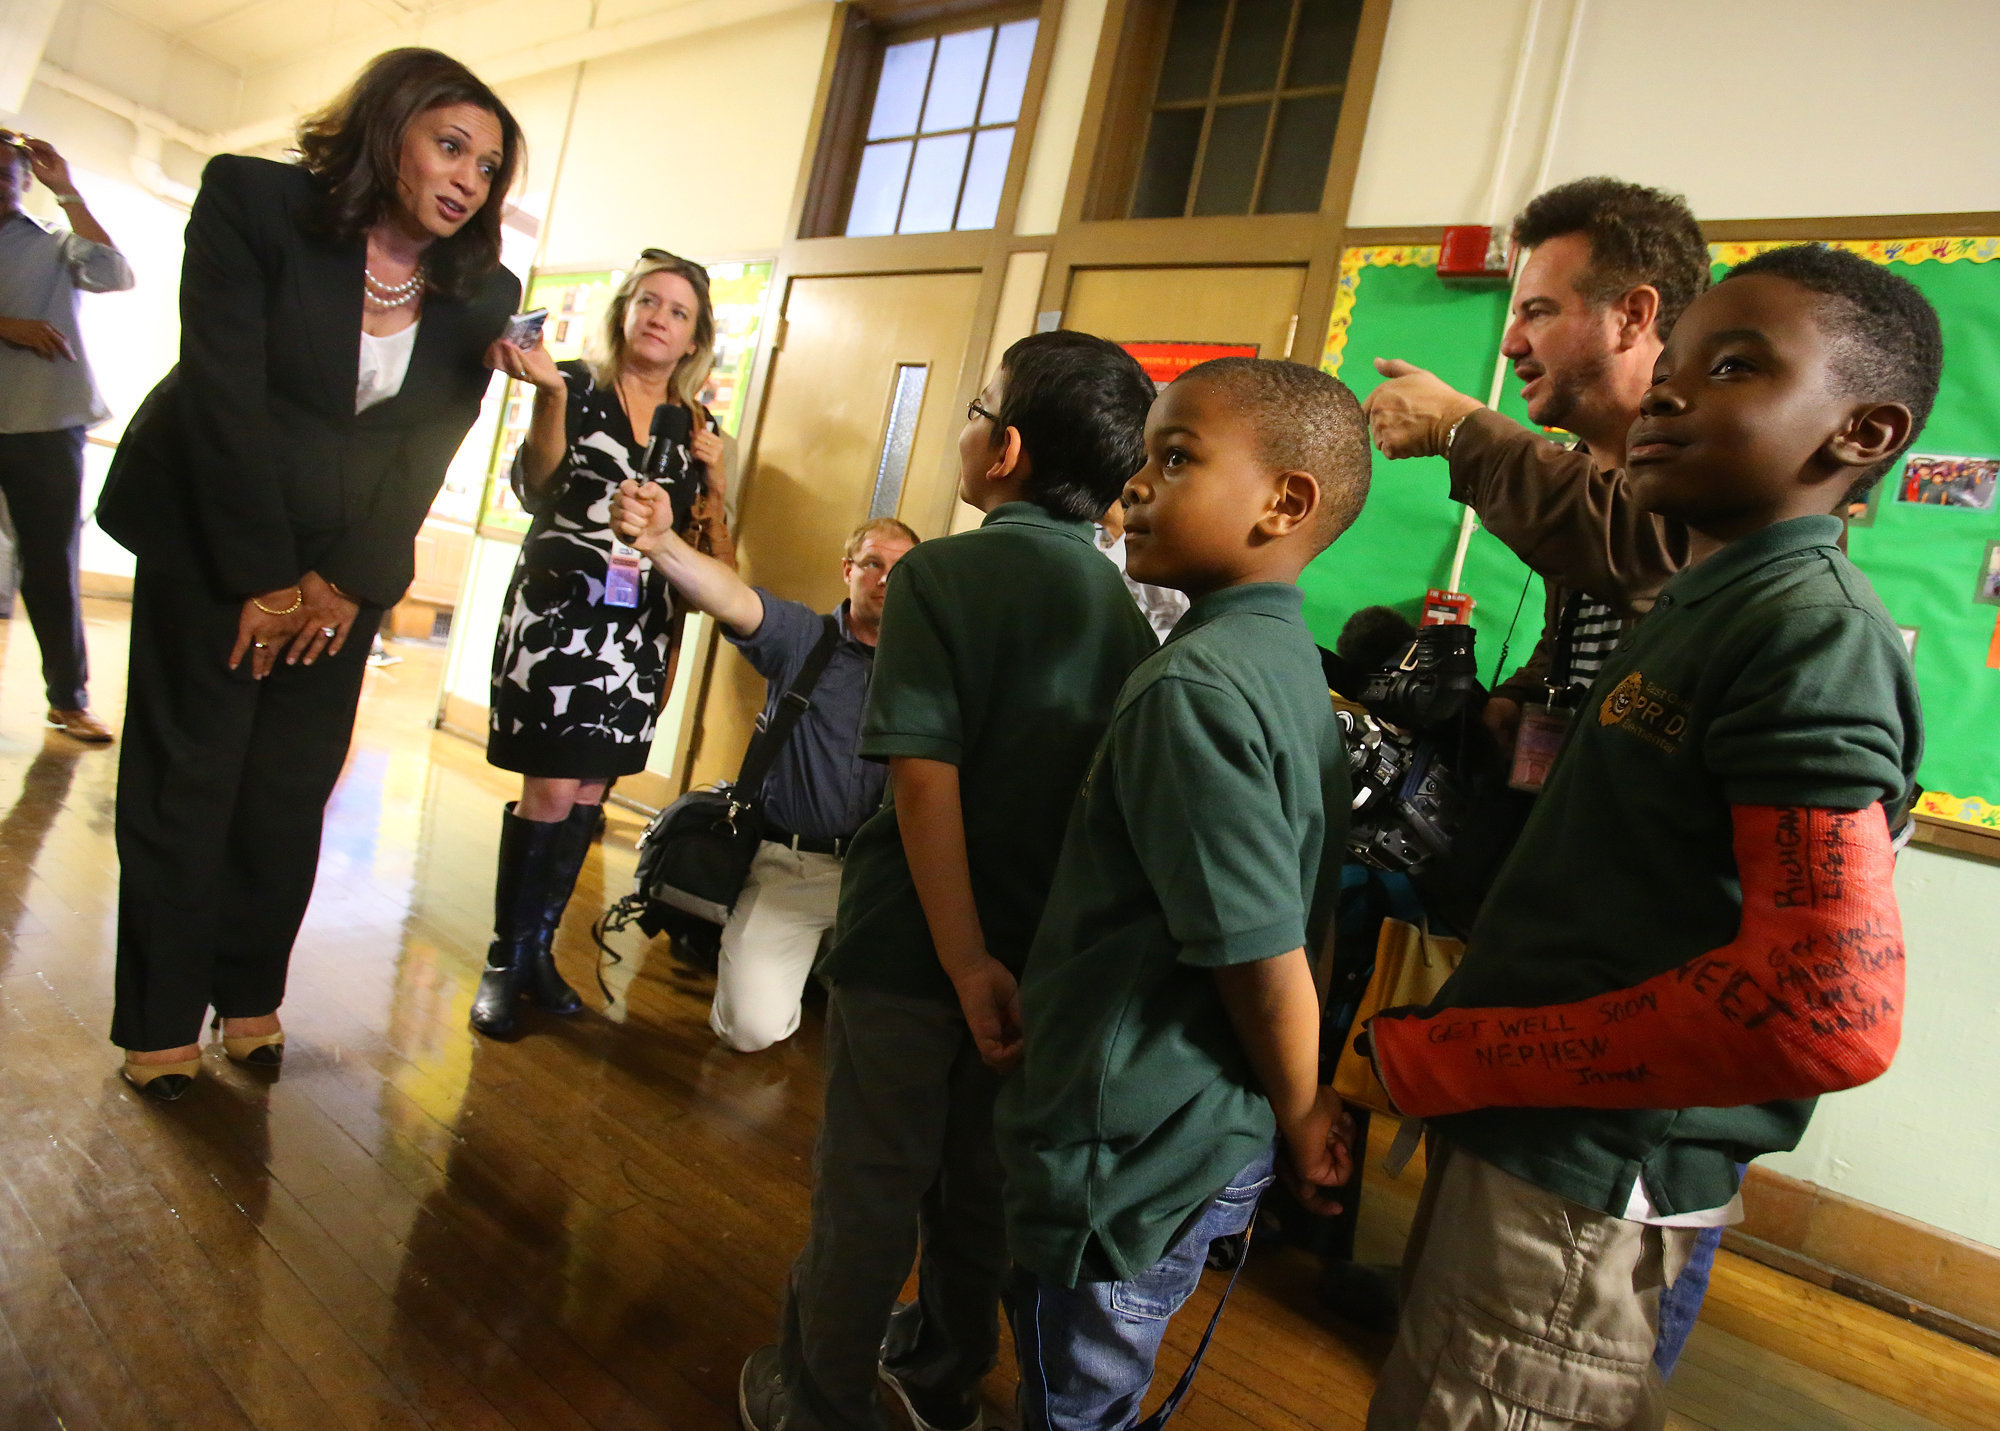 Harris, who was the attorney general for California at the time, talks with students at the East Oakland Pride Elementary Sch